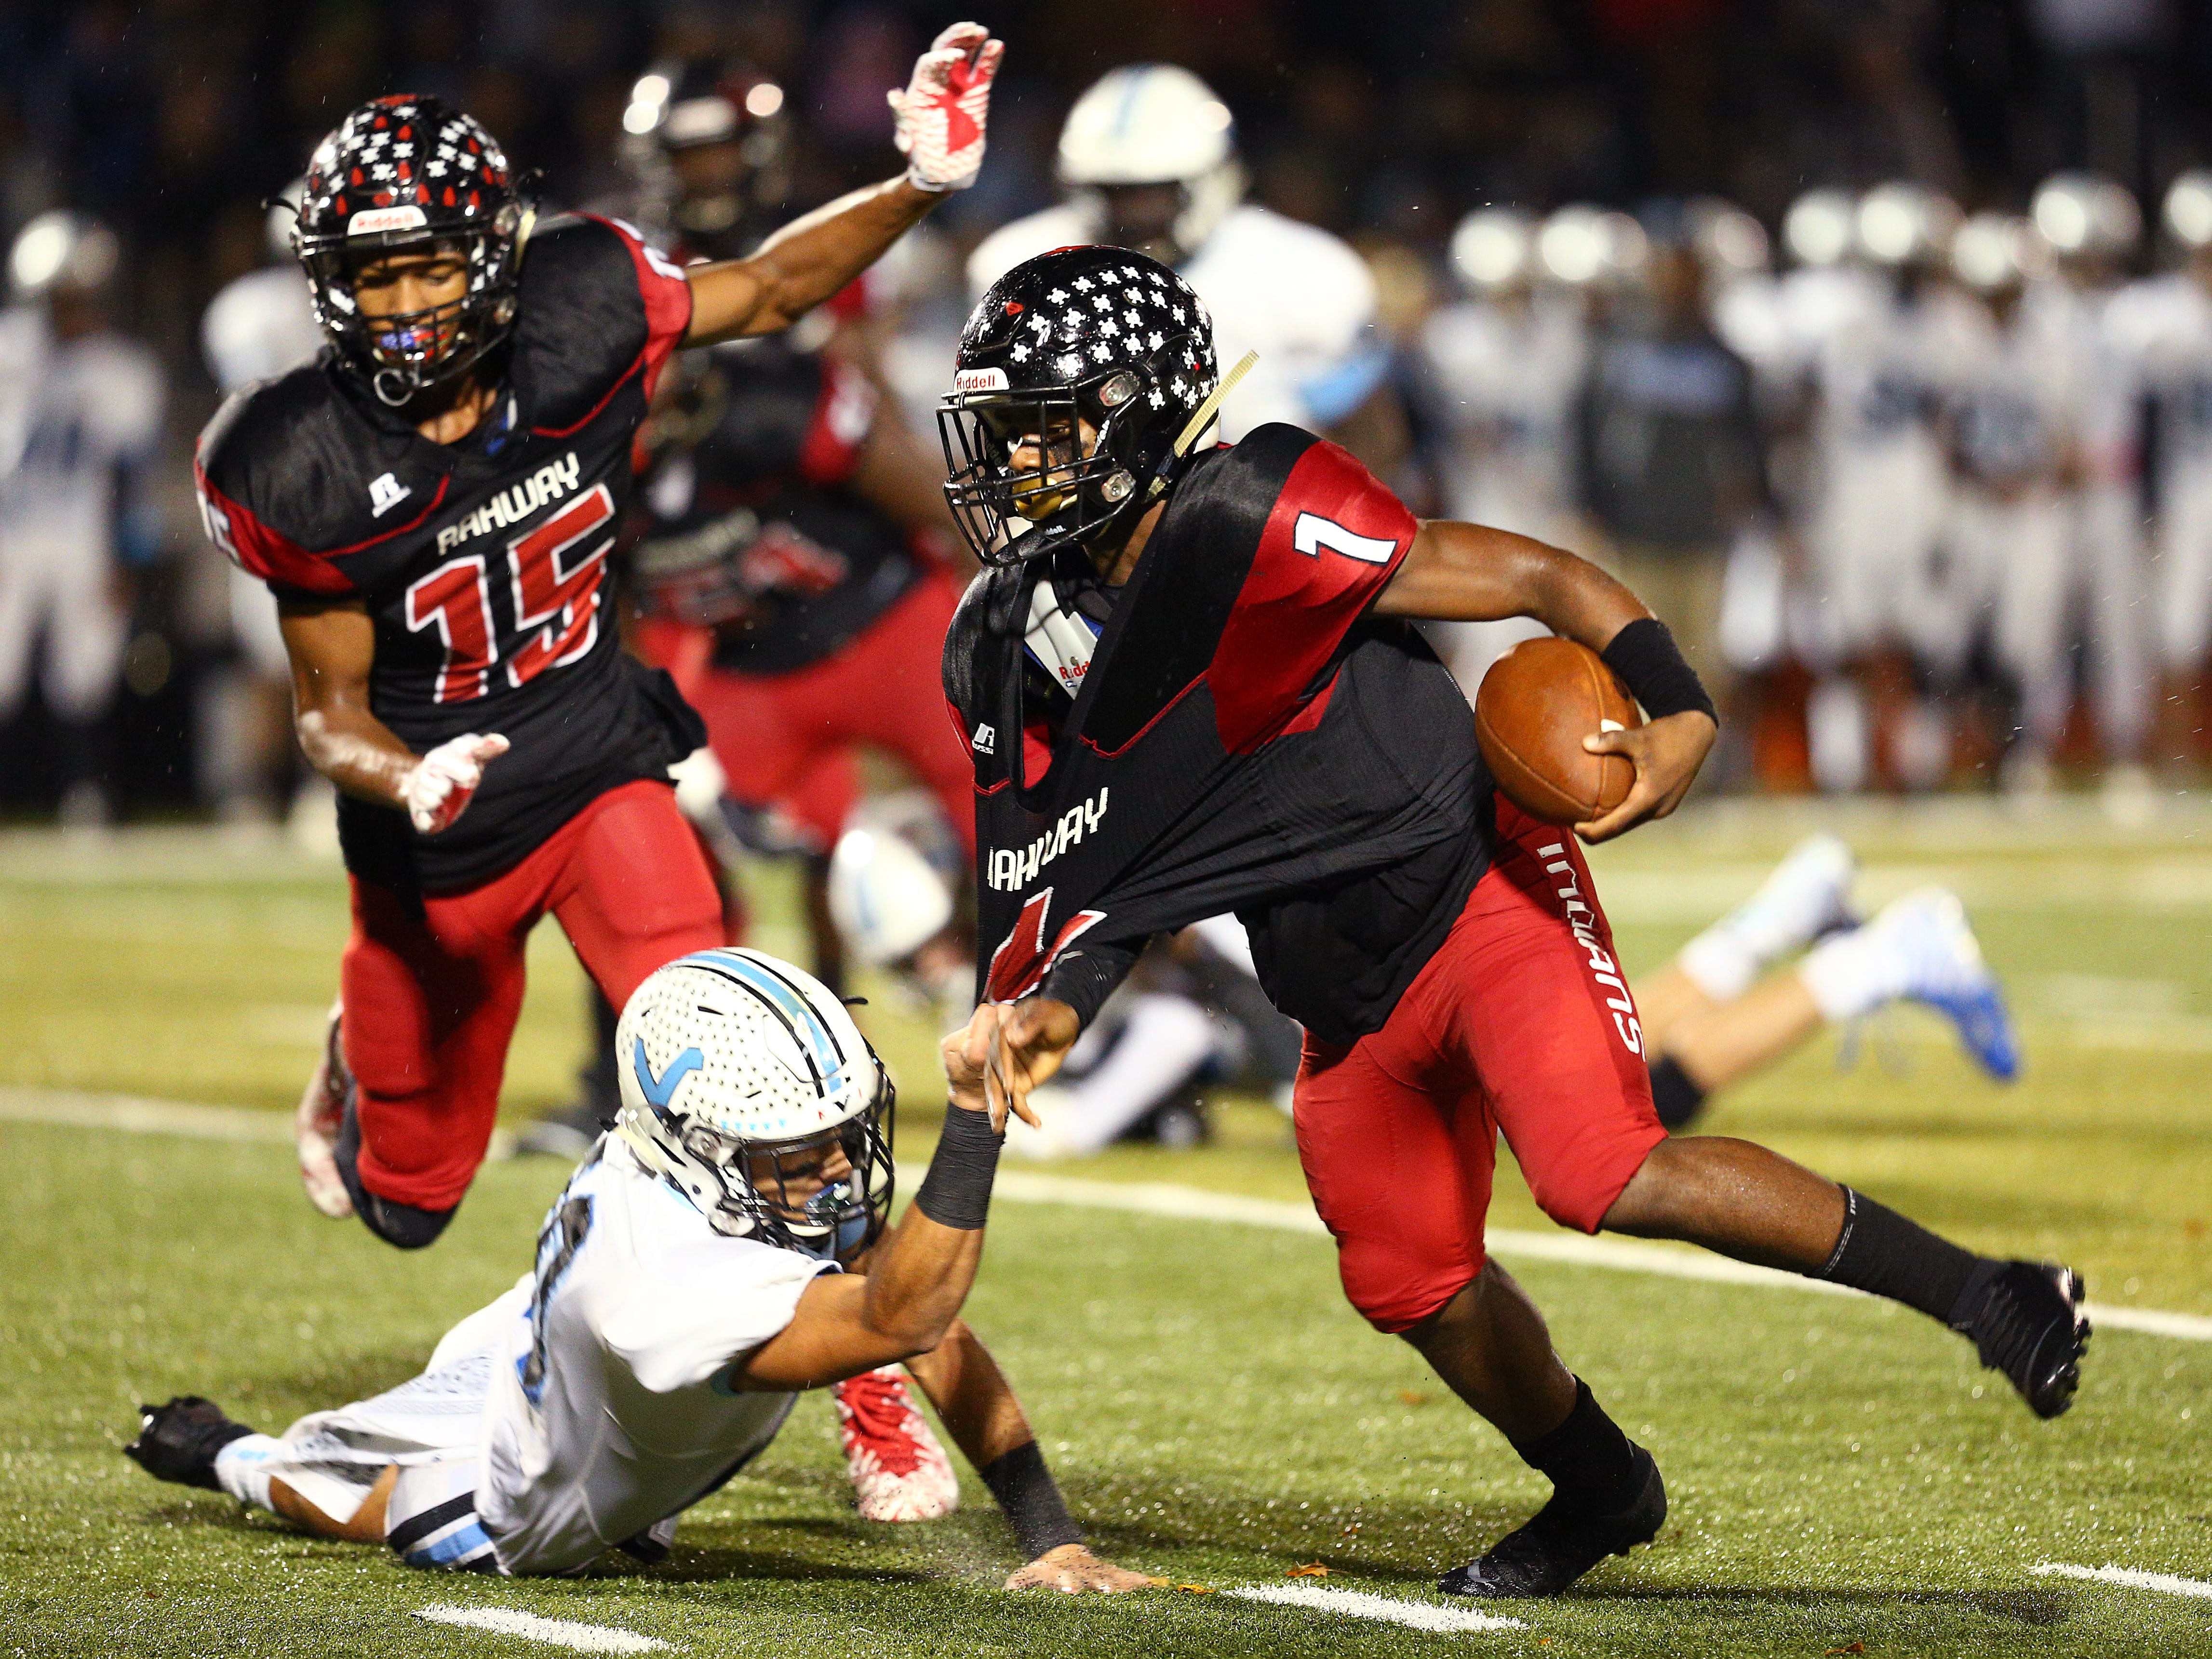 Parsippany Hills Jayson Marte hangs on to Rahway running back Da'Shon Moore during their NJSIAA North 2 Group III football quarterfinal at Rahway River Park. November 2, 2018, Rahway, NJ